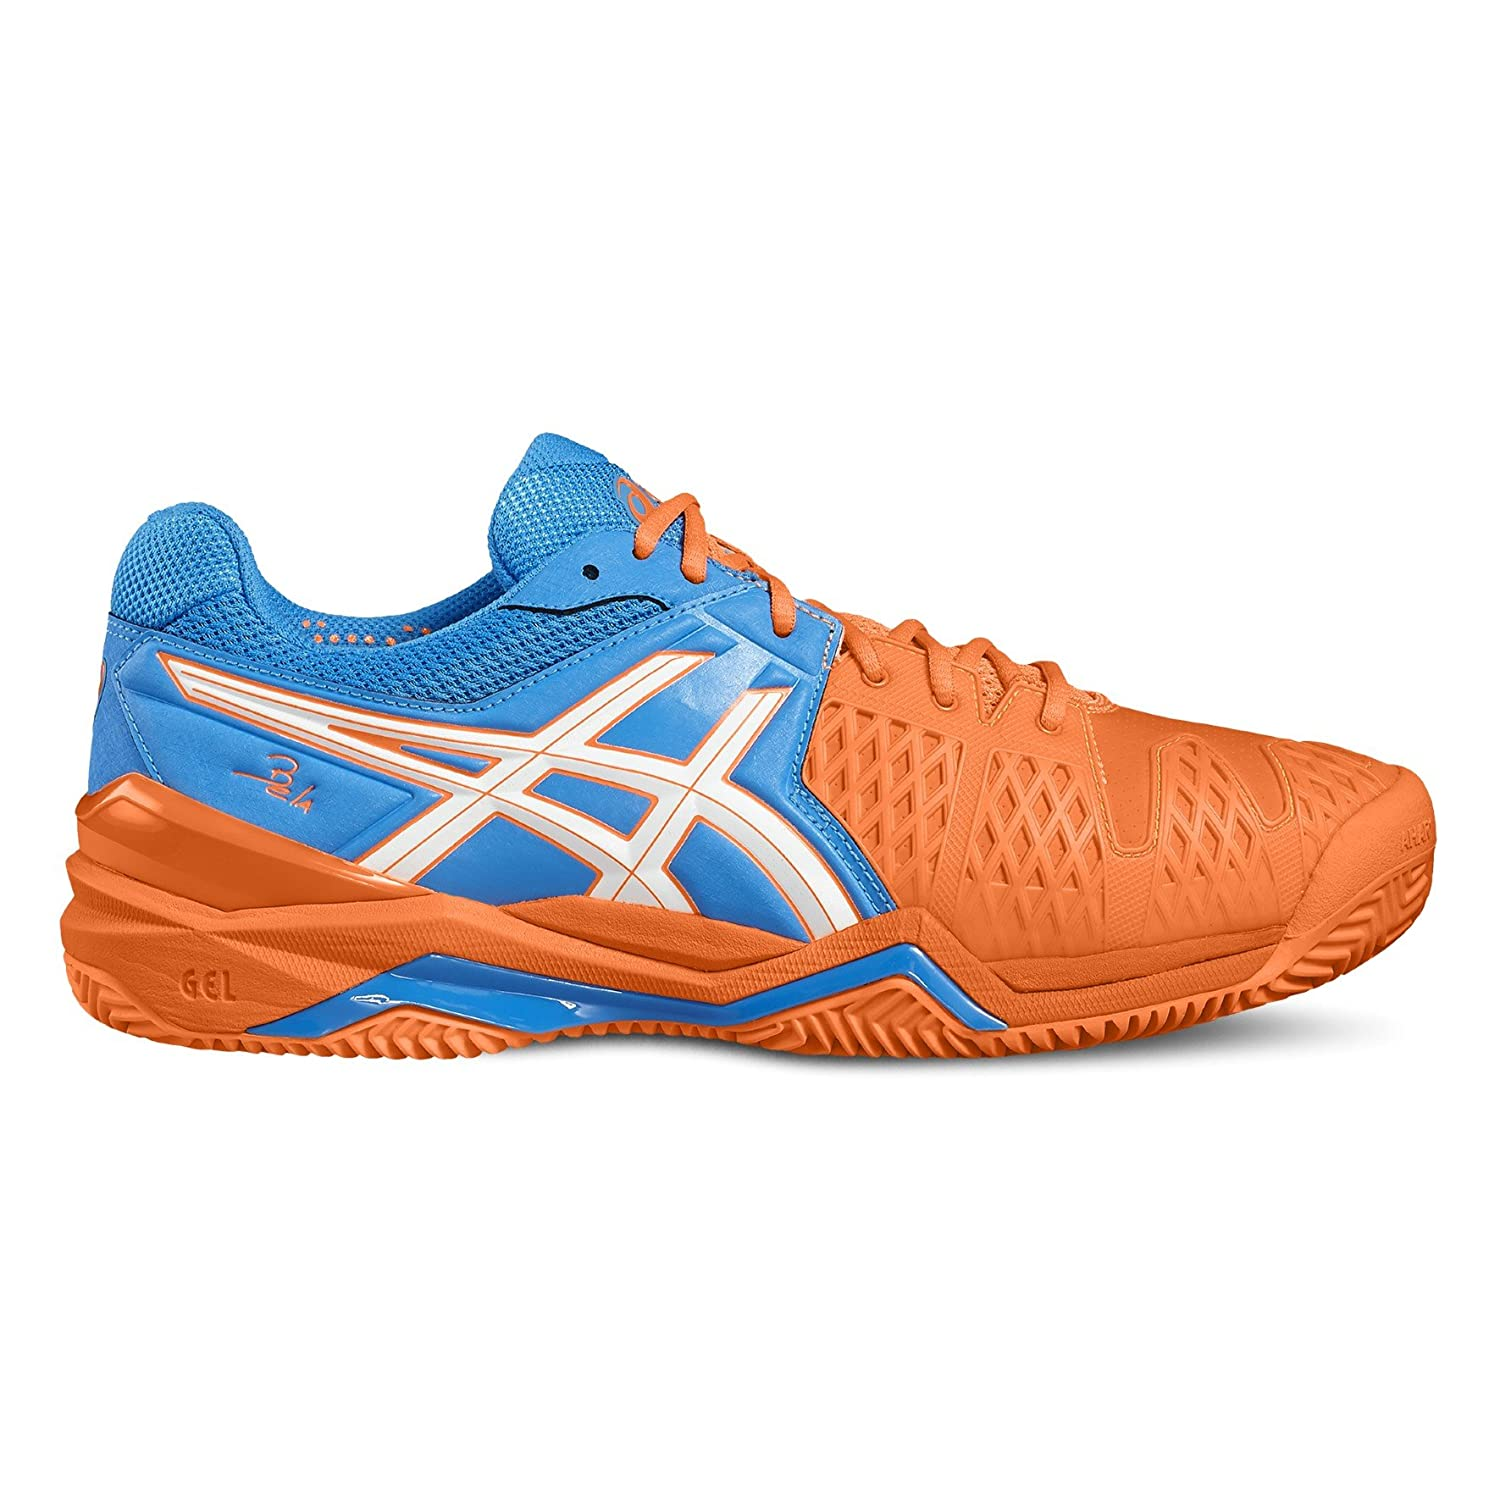 Zapatilla De Padel Asics Gel Bela 5 SG E607Y Color 4301-42,5: Amazon.es: Zapatos y complementos